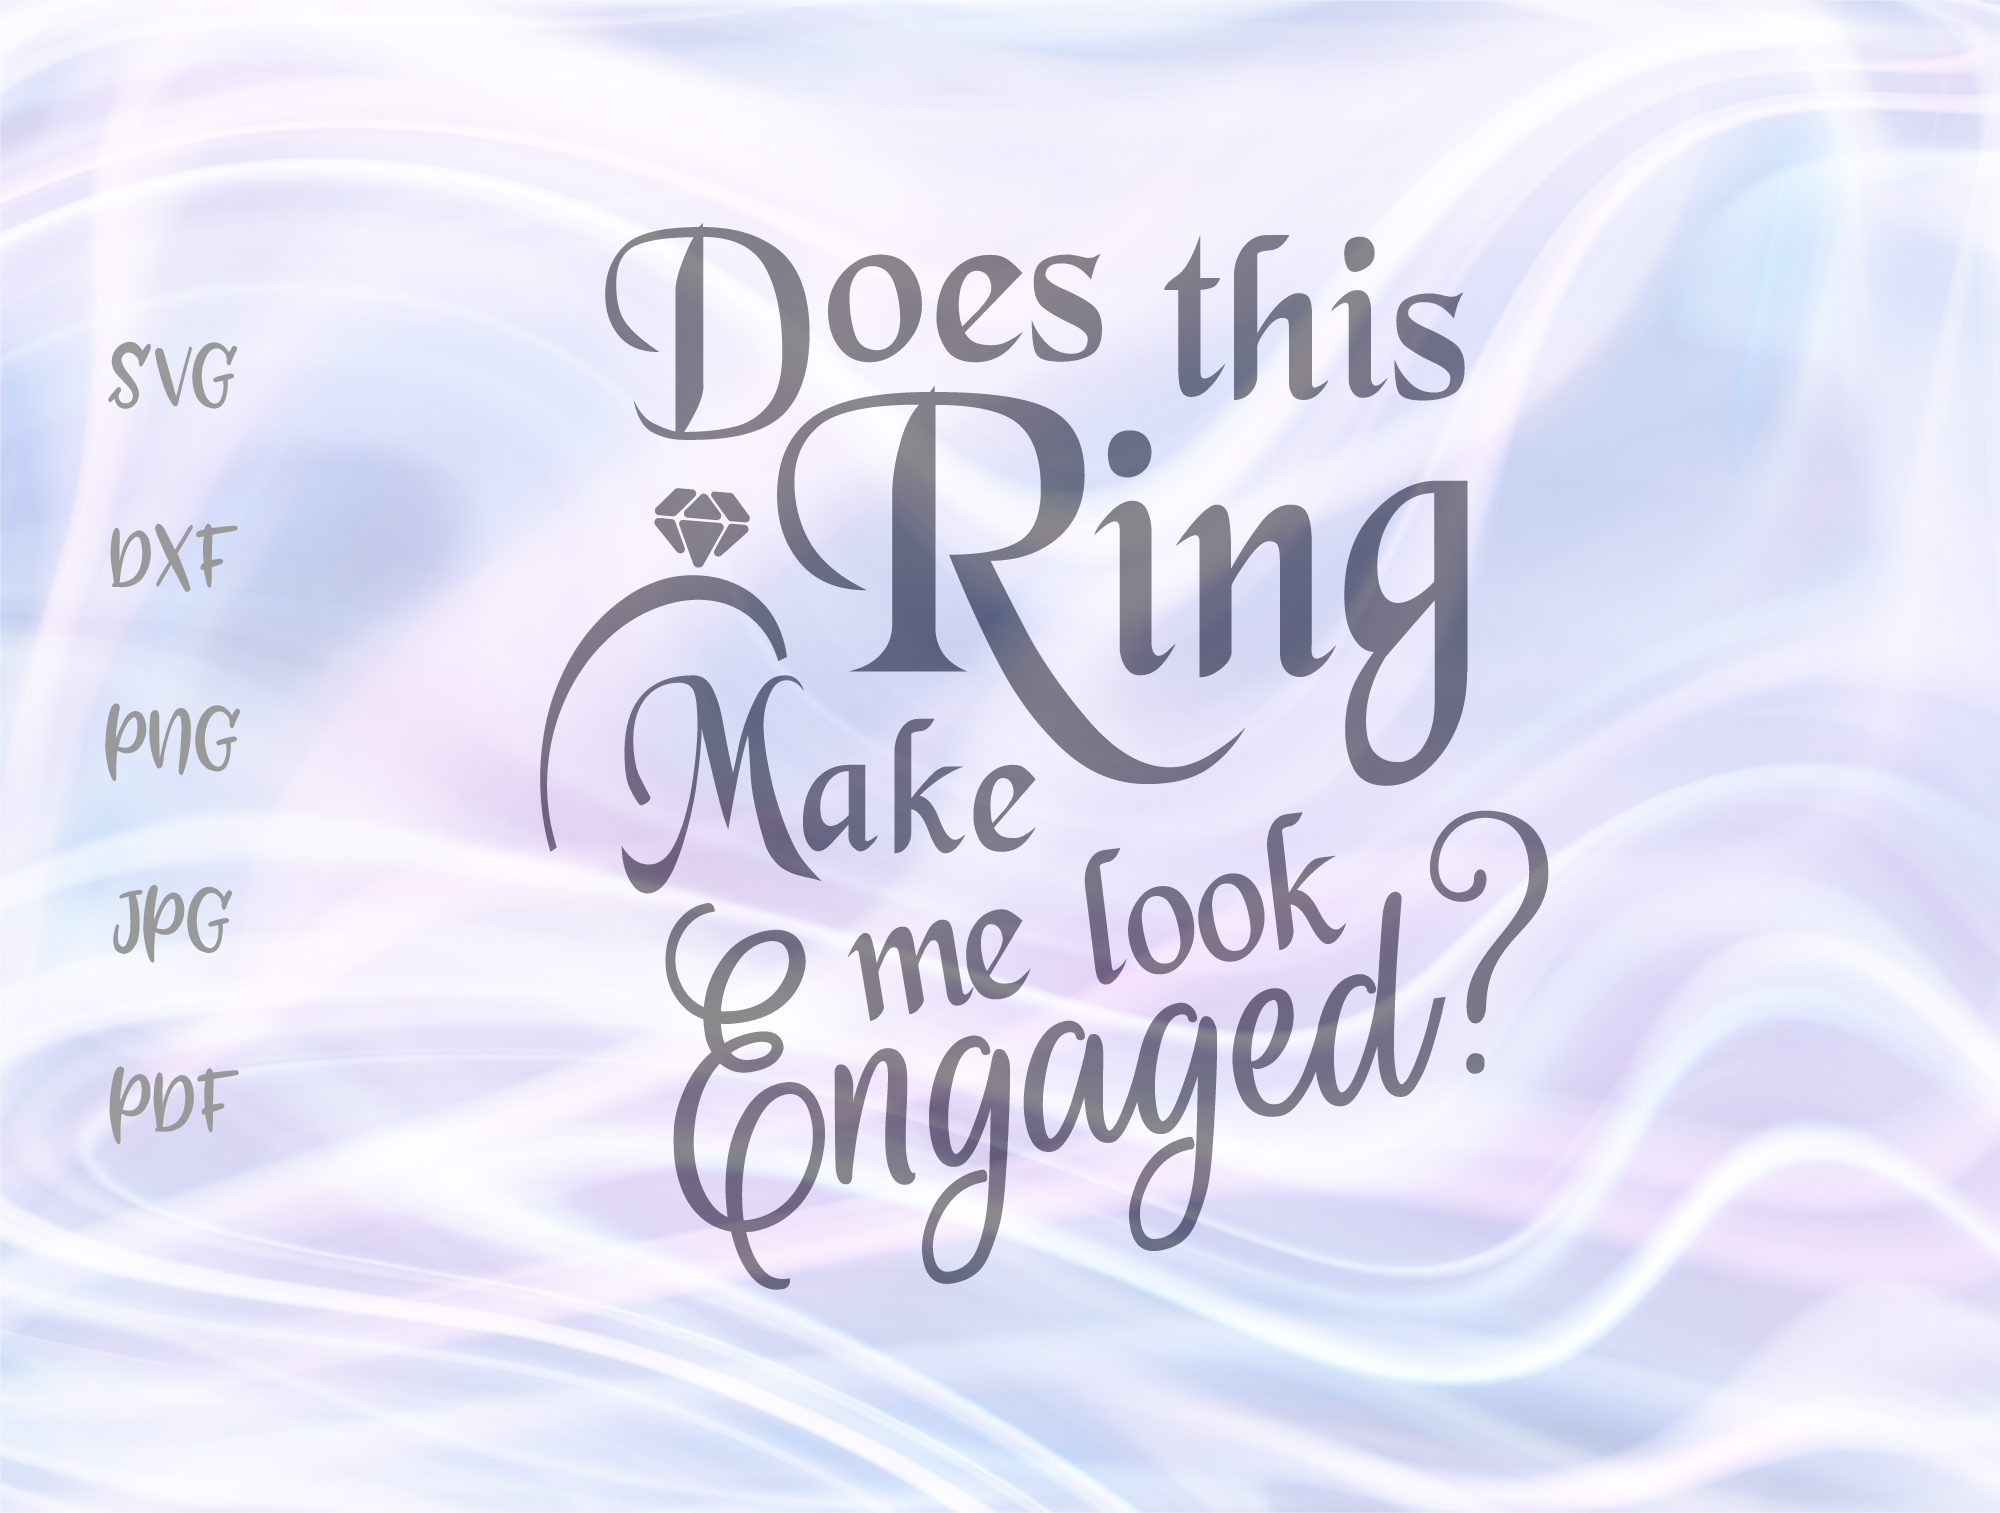 Download Free Does This Ring Make Me Look Engaged Graphic By Digitals By Hanna for Cricut Explore, Silhouette and other cutting machines.